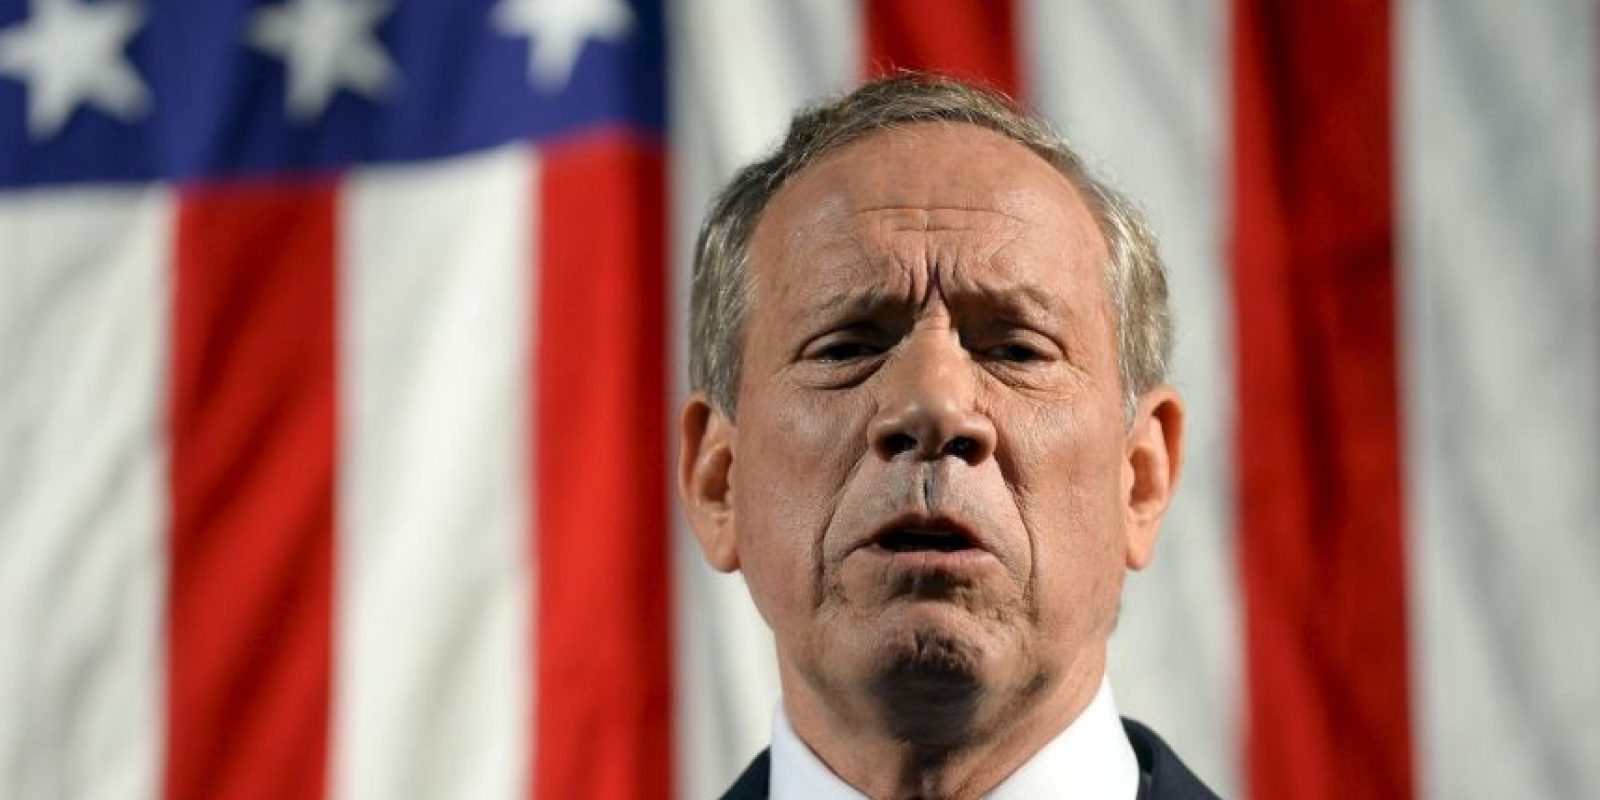 6. George Pataki Foto: Getty Images